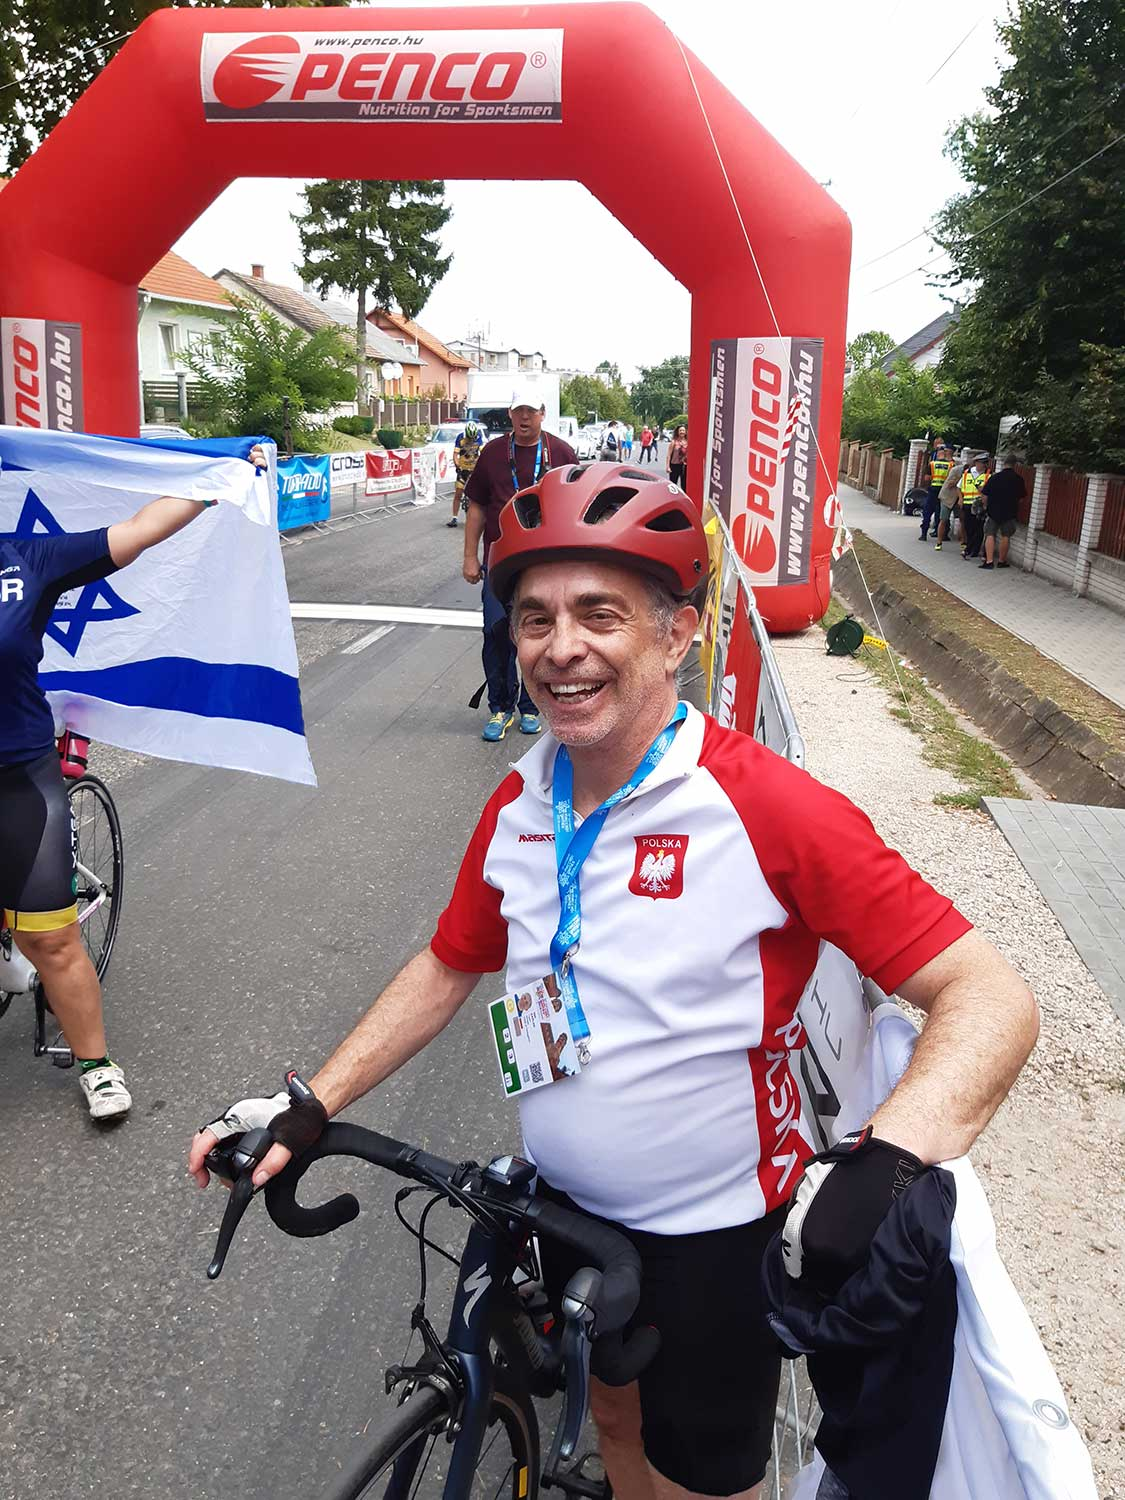 Neil Kaplan at Cycling Road Race at the 2019 European Maccabi Games